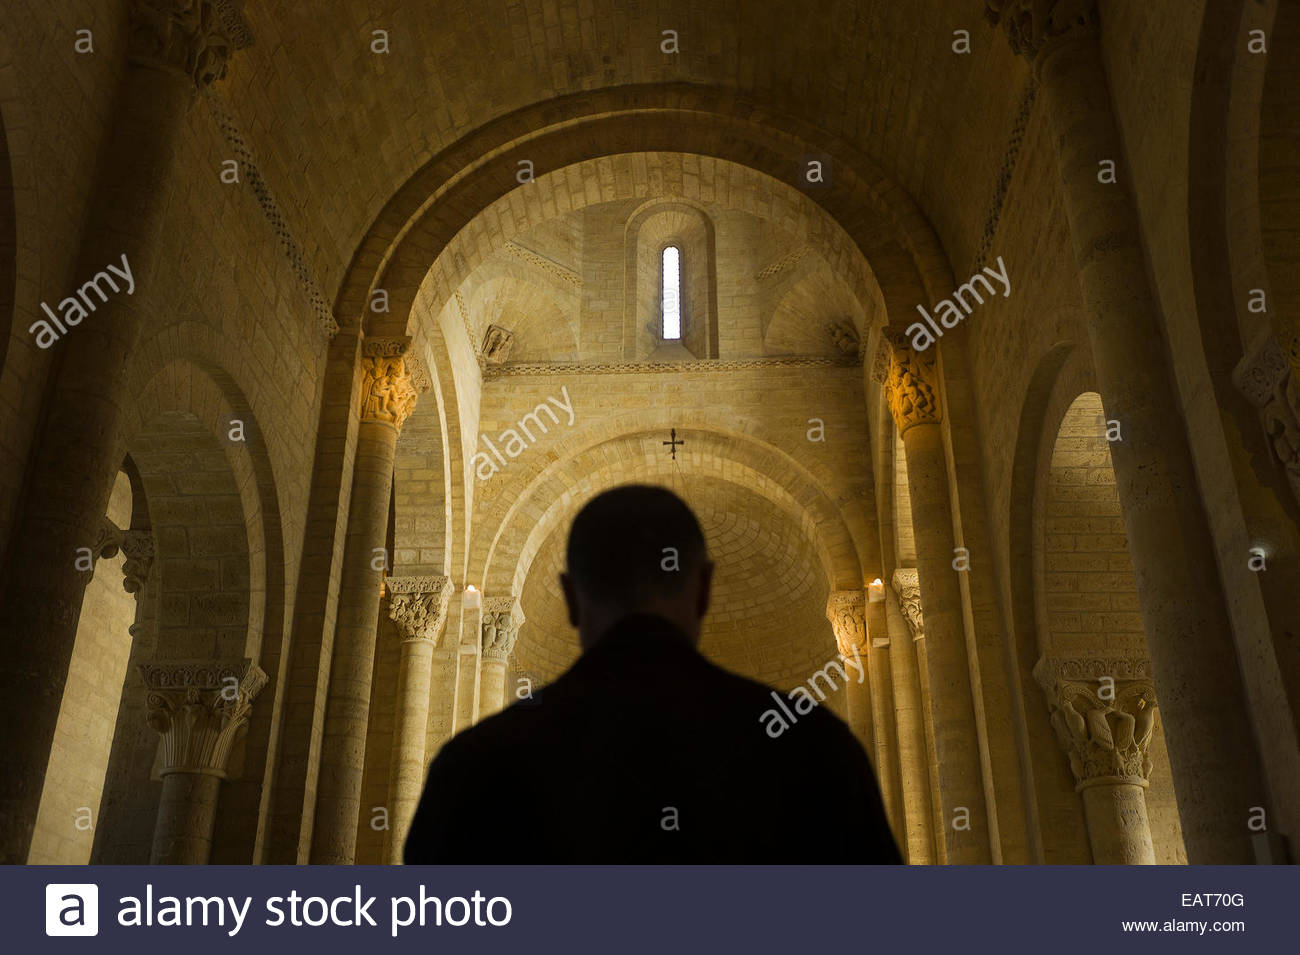 A man at the Church of St. Martin de Tours in Formista, Spain. Stock Photo